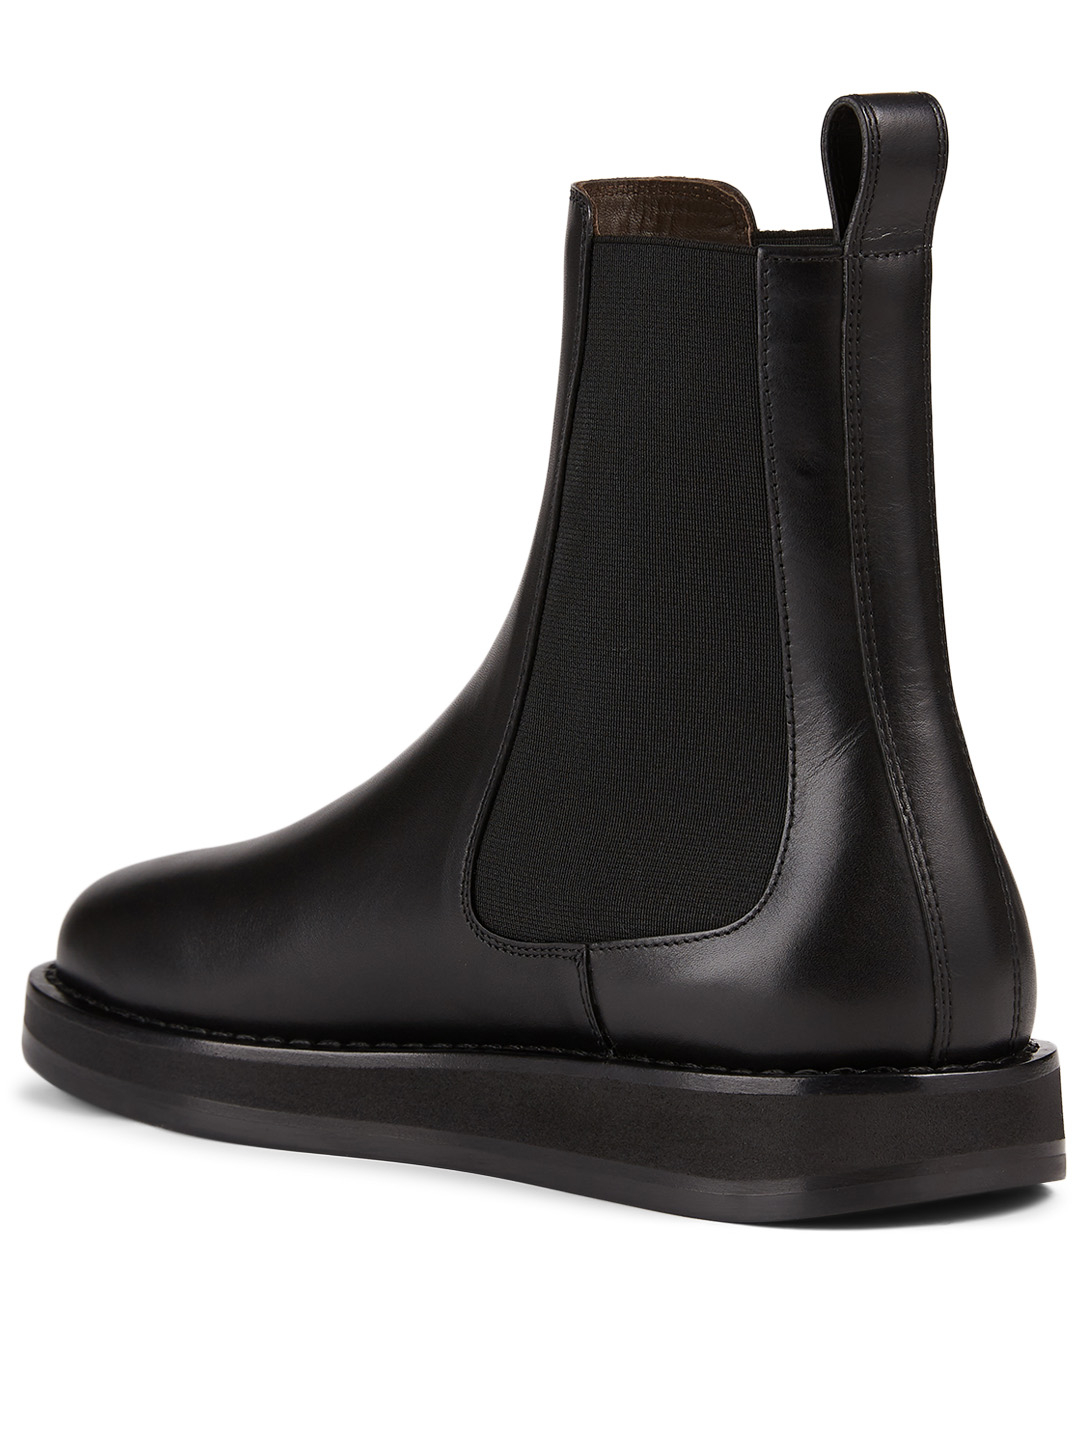 THE ROW Gaia Leather Chelsea Boots Women's Black